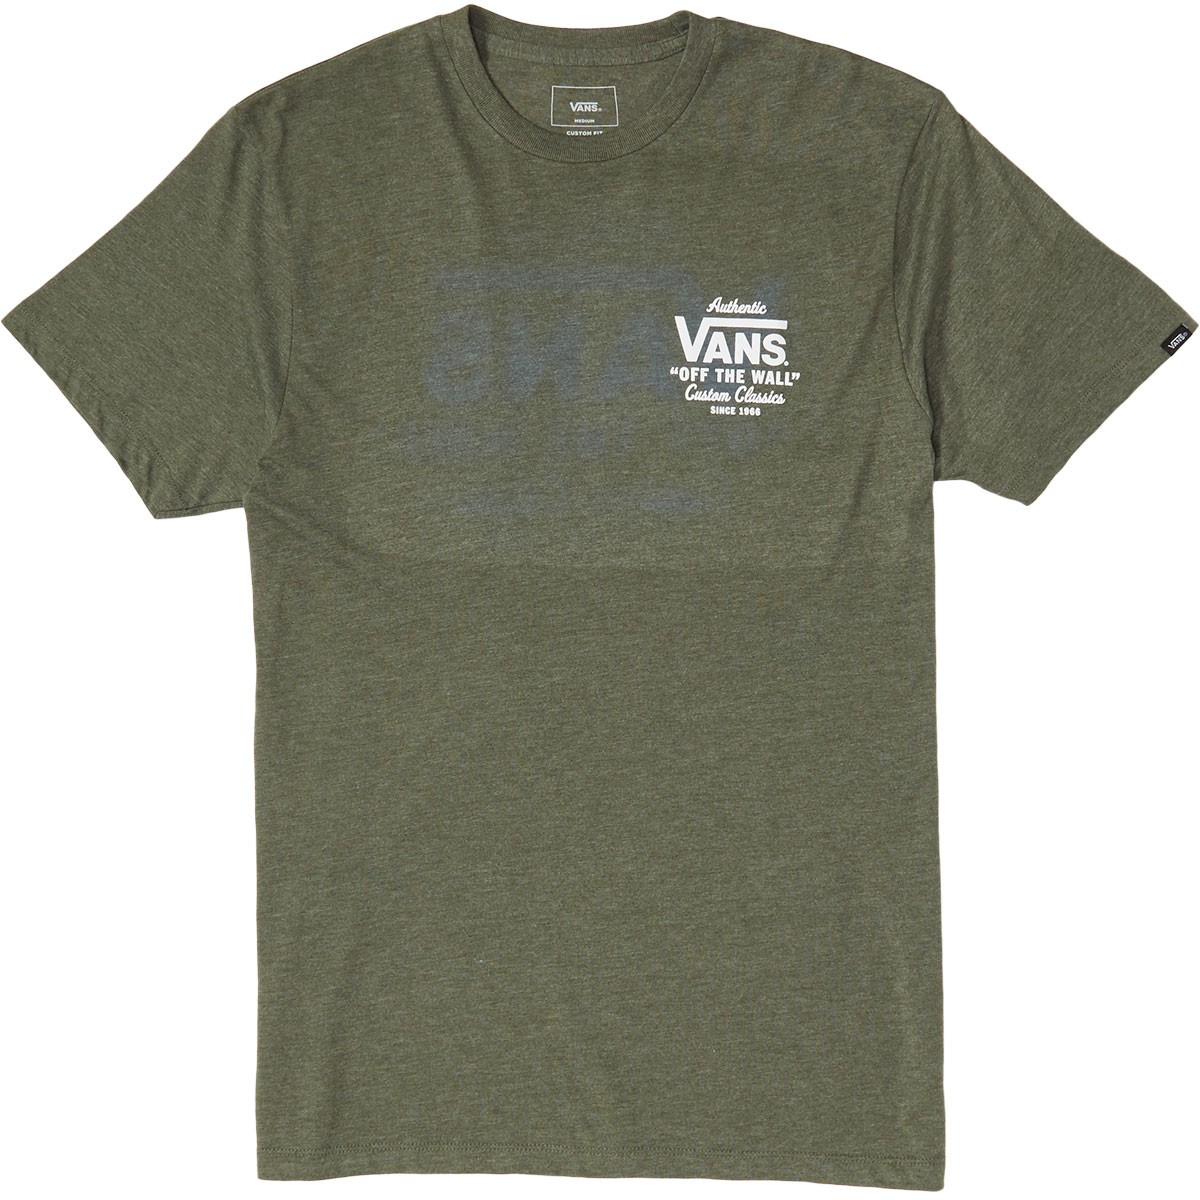 64ccadd15d Vans Holder Street II T-Shirt - Olive Heather